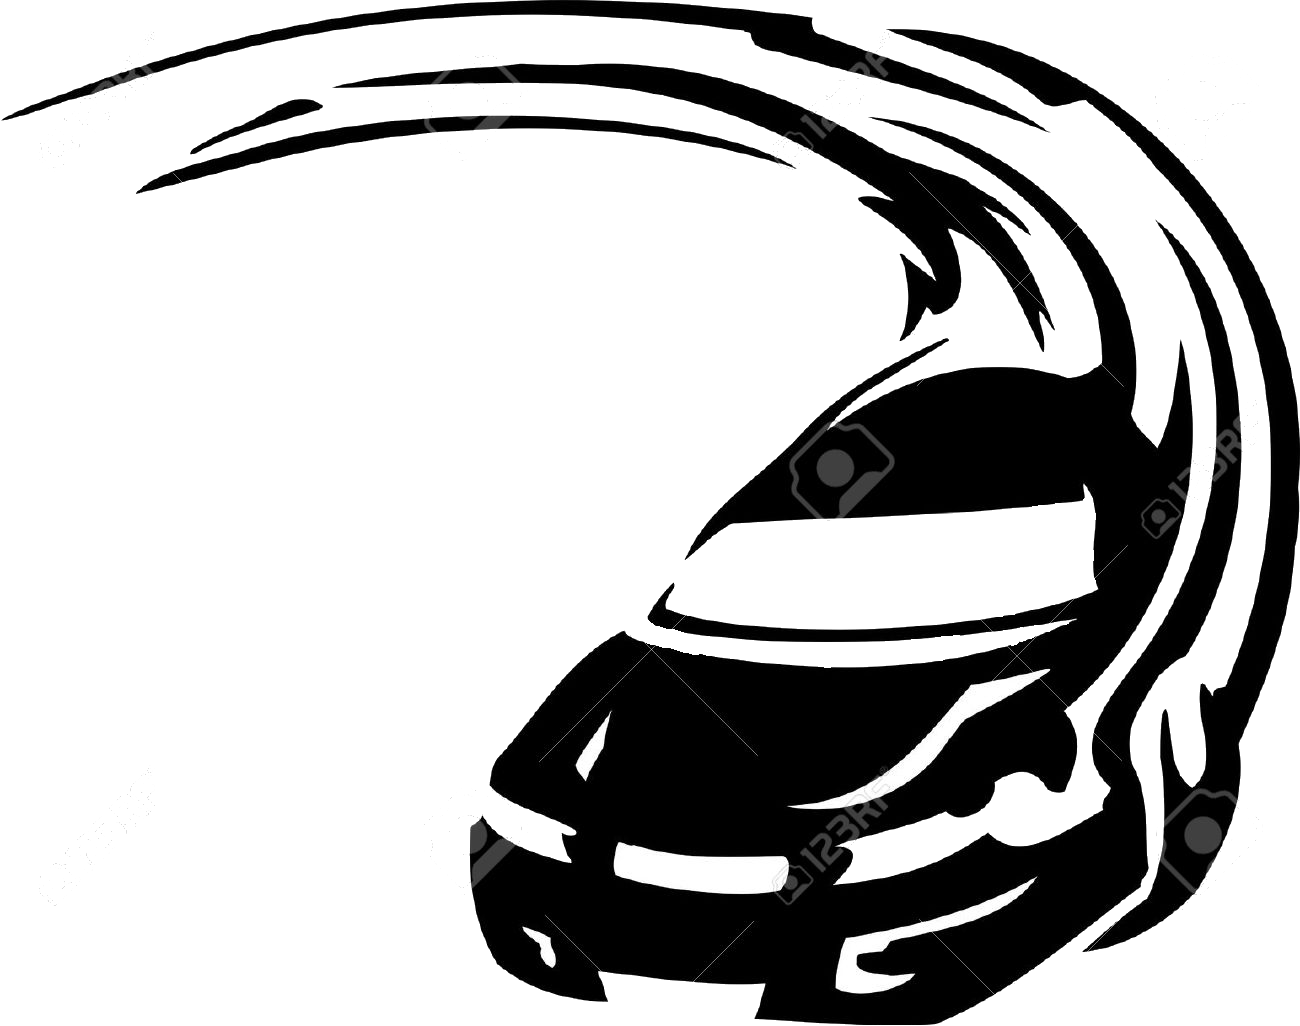 graphic freeuse stock Race car black and white clipart. Auto racing stock photography